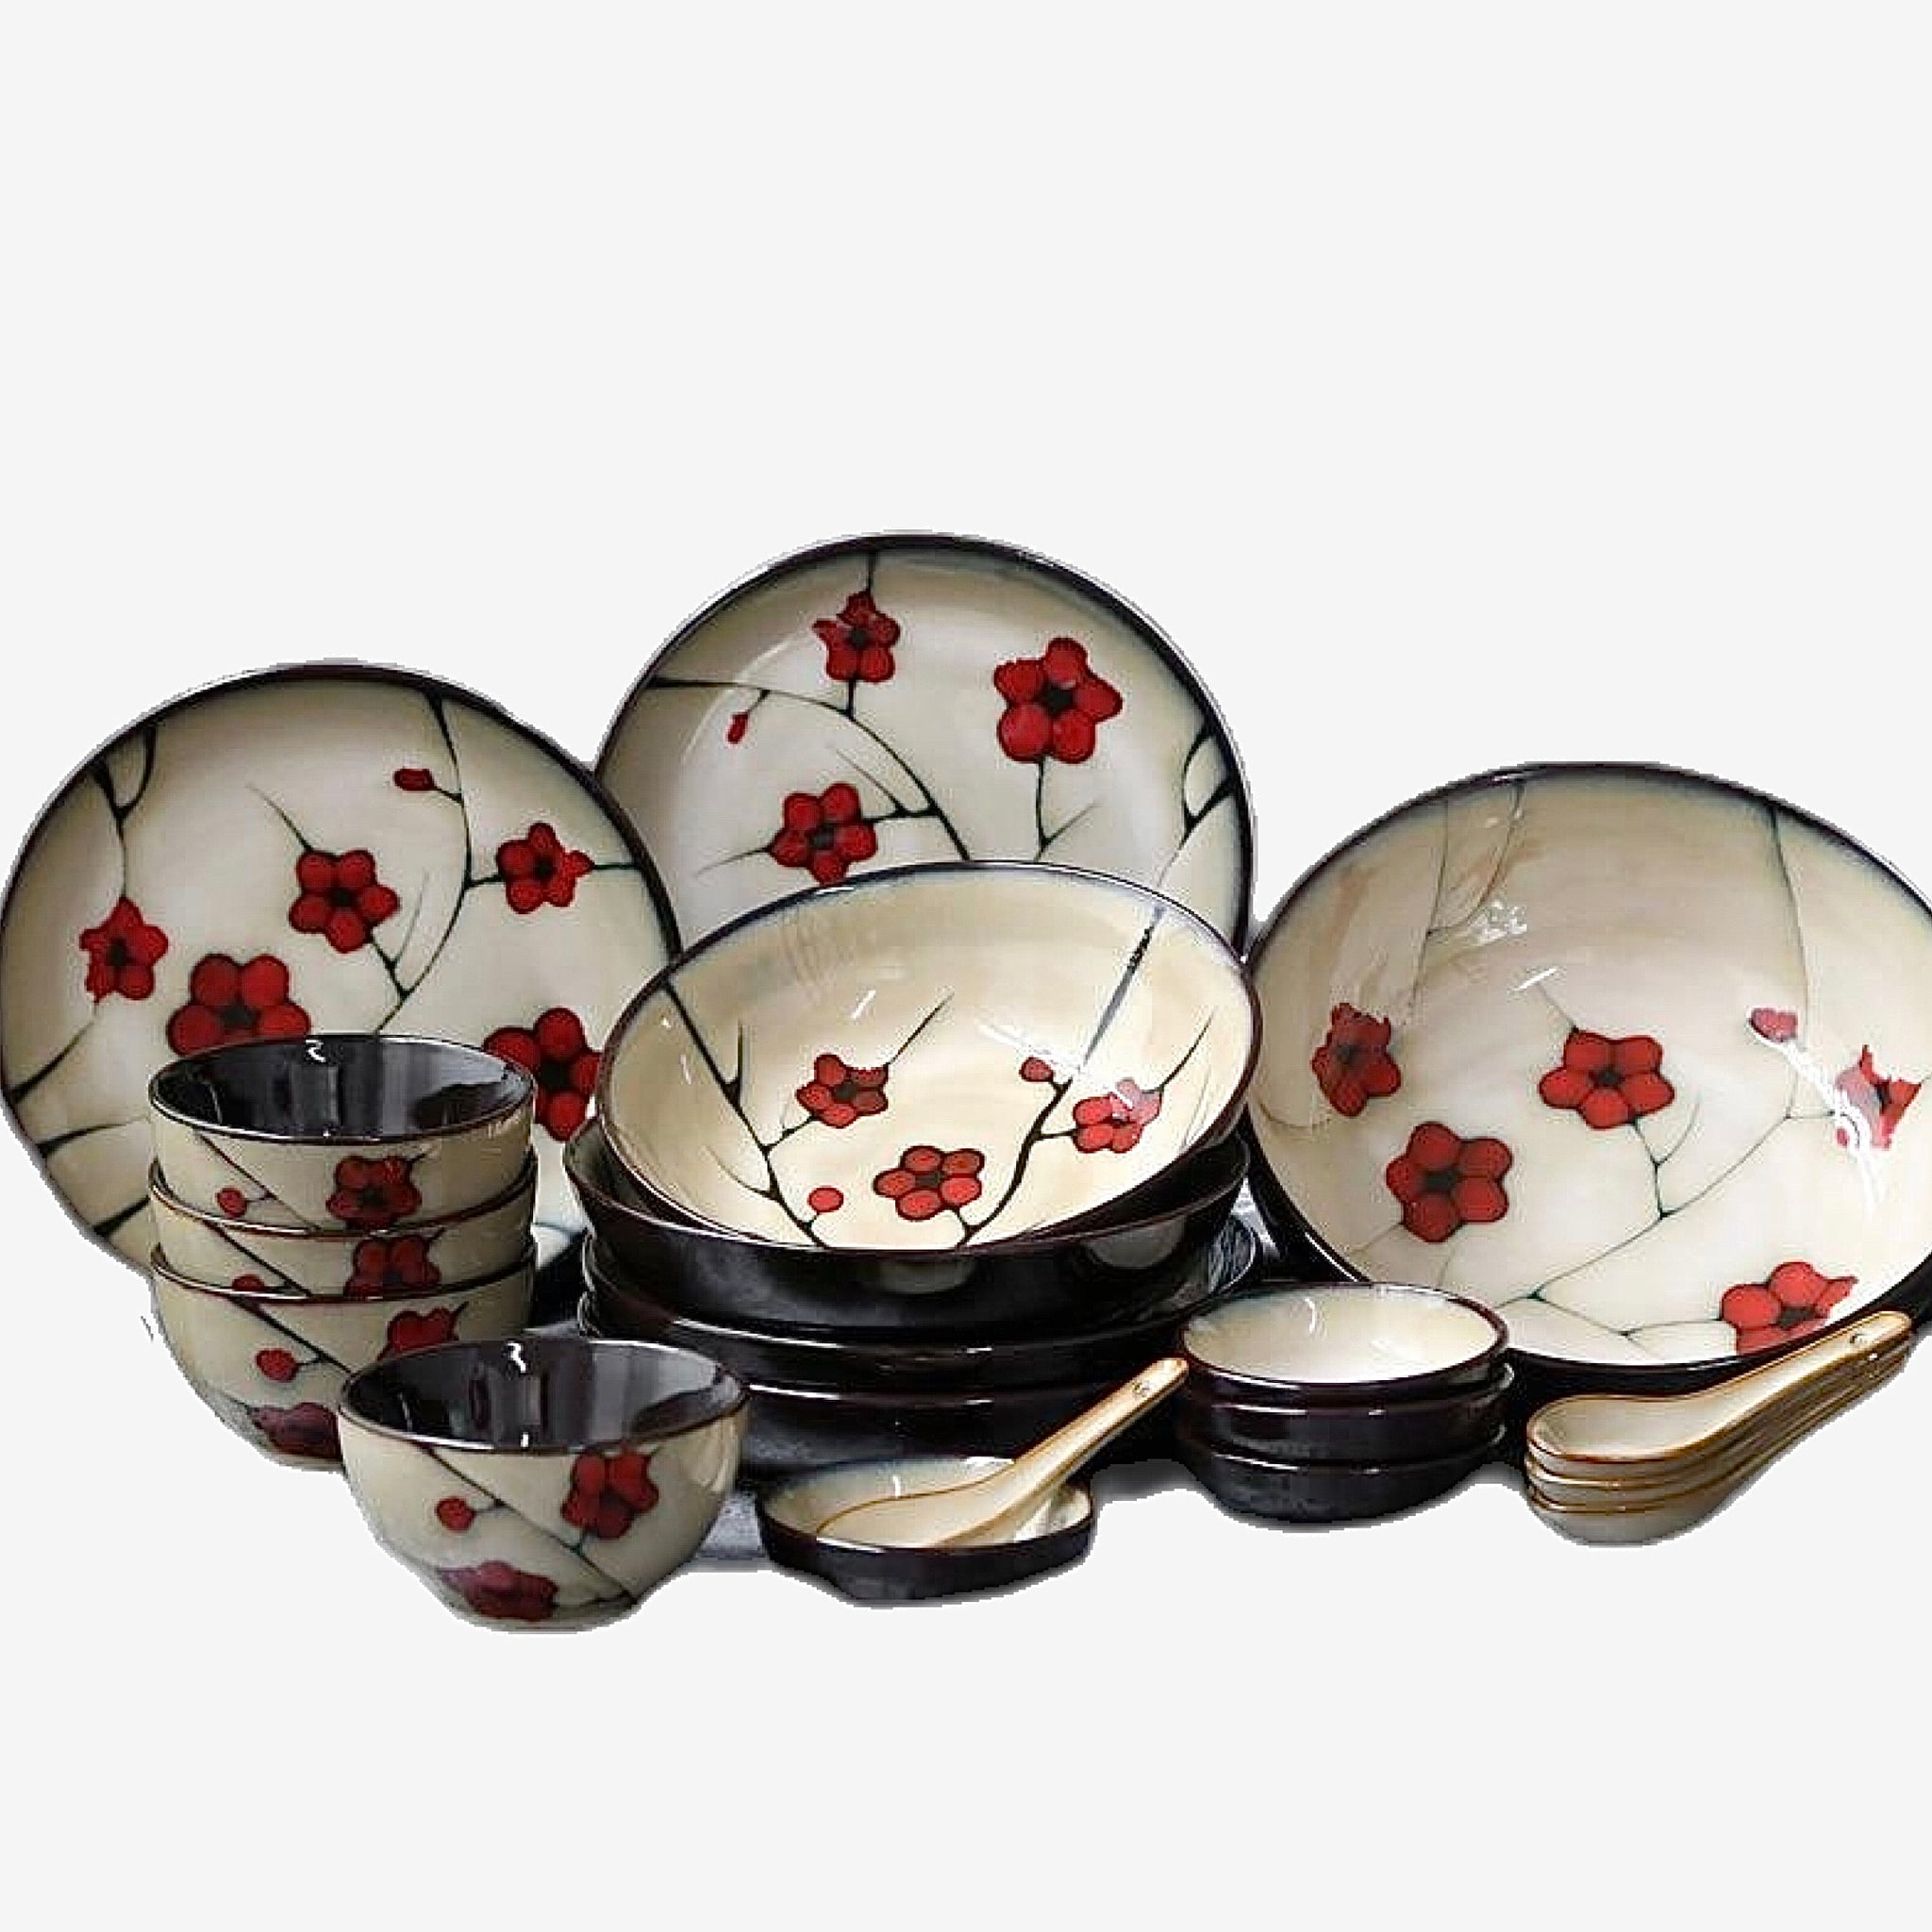 Japanese Red Plum Porcelain Tableware Kitchen Serveware Serving Bowls and Baskets Trend